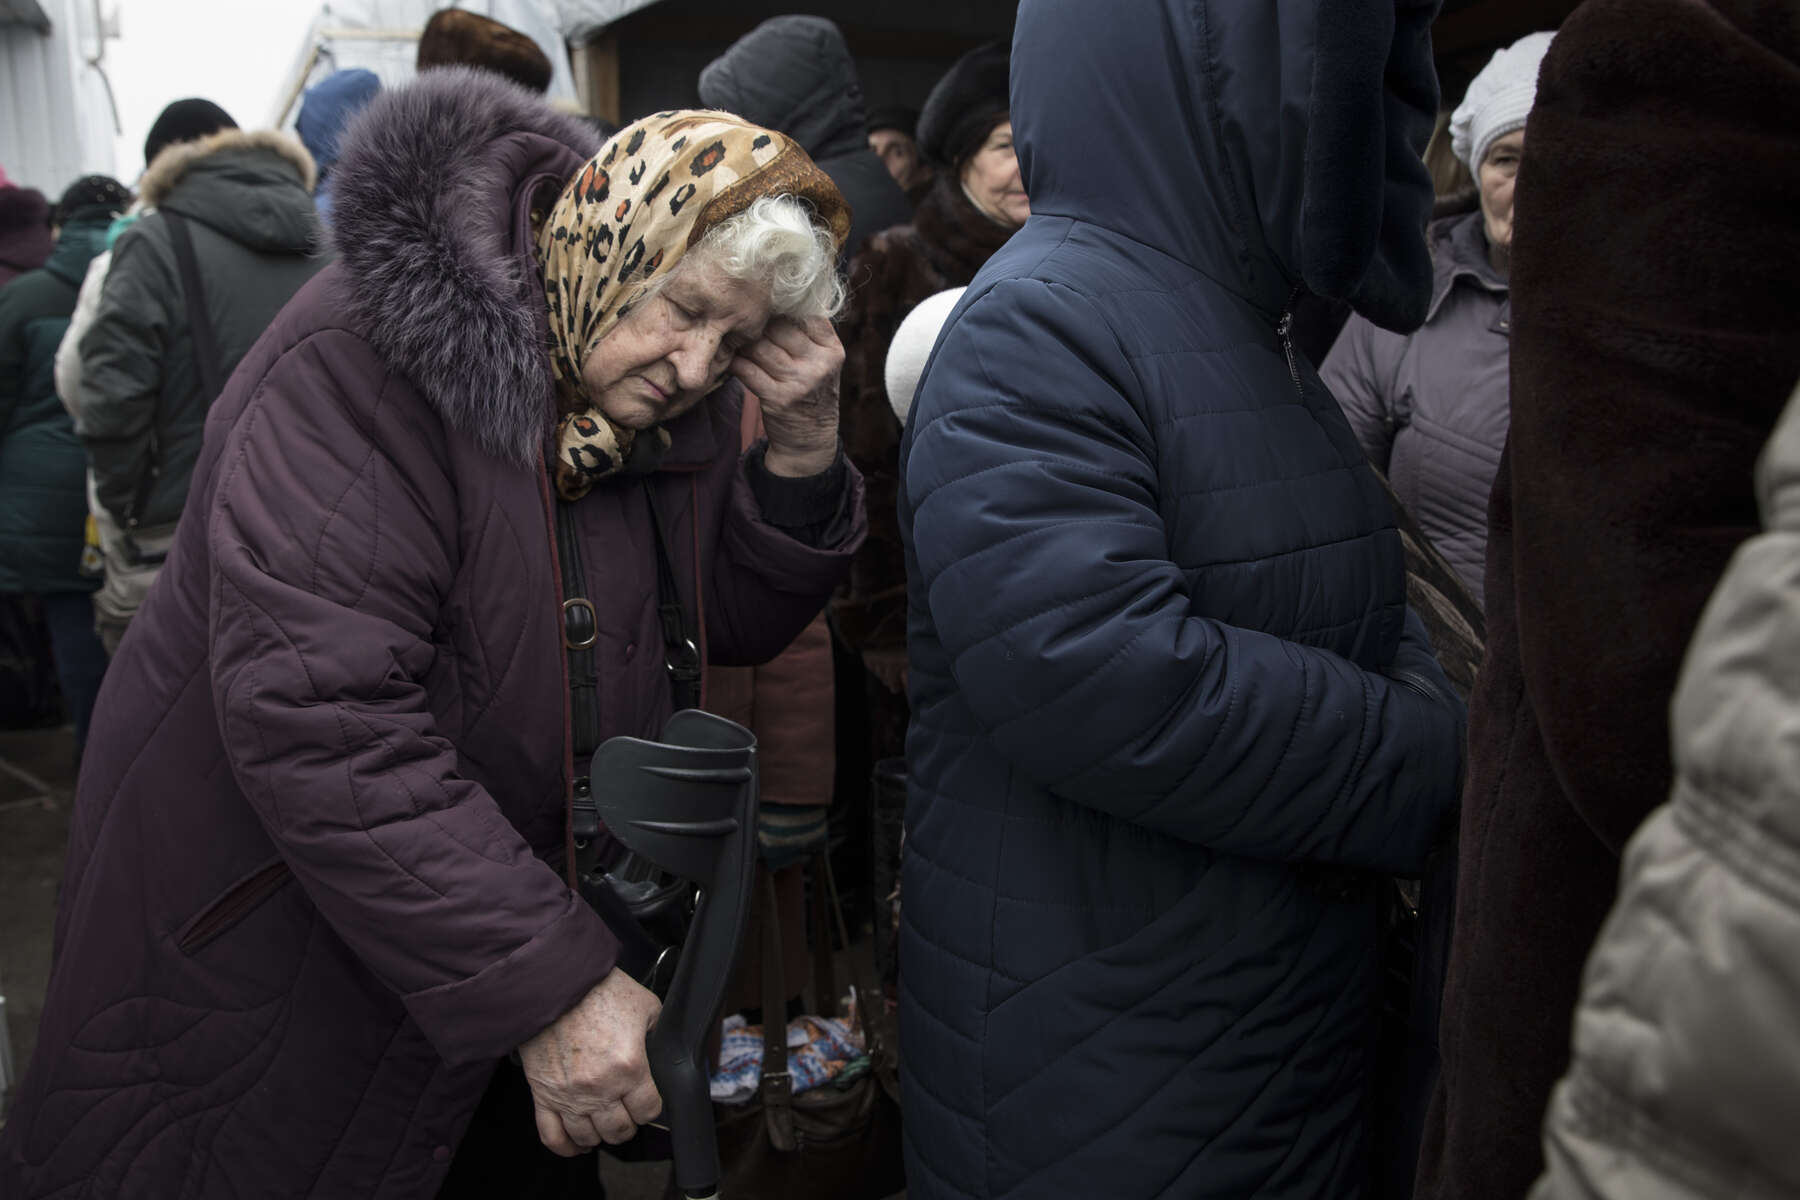 Mayorsk, Eastern Ukraine: An elderly woman is exhausted after waiting in line for hours in the cold to cross the border from Donetsk to the government-controlled territory of Ukraine in order to collect her pension.After more than four years of war the armed conflict in eastern Ukraine has a human toll that is staggering. The war has displaced more than 1.6 million with over 2,500 civilians killed and 9,000 injured. Some 200,000 people live under constant fear of shelling every day, with nearly a third of the 3.4 million people in need of humanitarian assistance over 60 years of age. Ukraine has the highest proportion of elderly affected by war in the world.